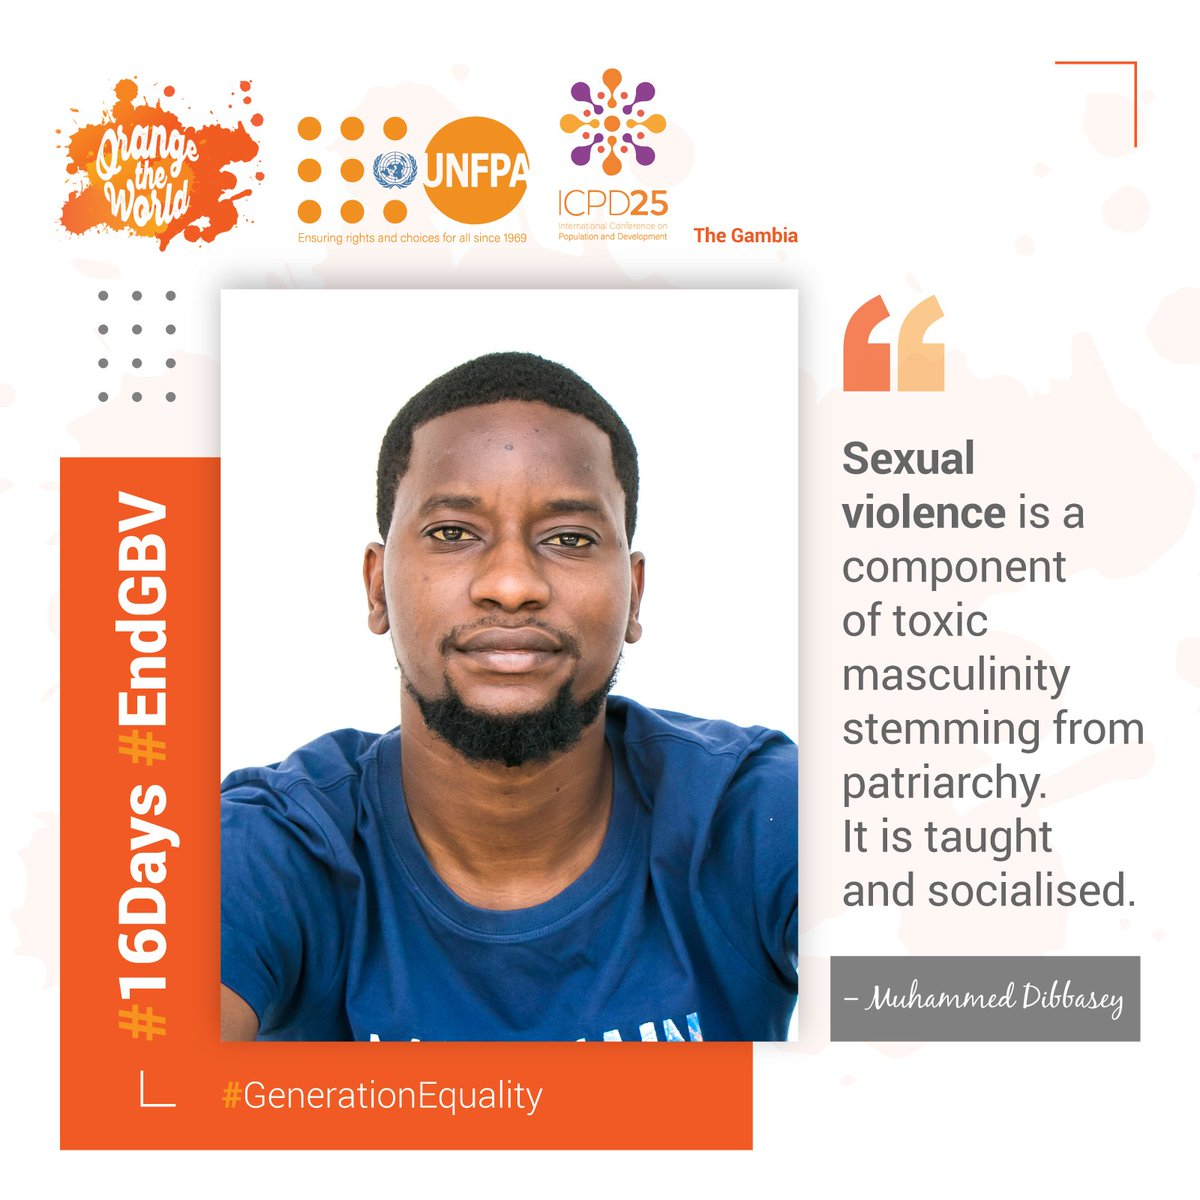 """RT mabinguengom1 """"RT UNFPATheGambia: Good morning🧡  Our drive today stems from young men using their voices and platforms to speak up for their sisters.   Here is dipsey___'s message for #16DaysOfActivism as we #OrangeTheWorld and stand against #VAW.… https://t.co/EOELKzZ8F5"""""""